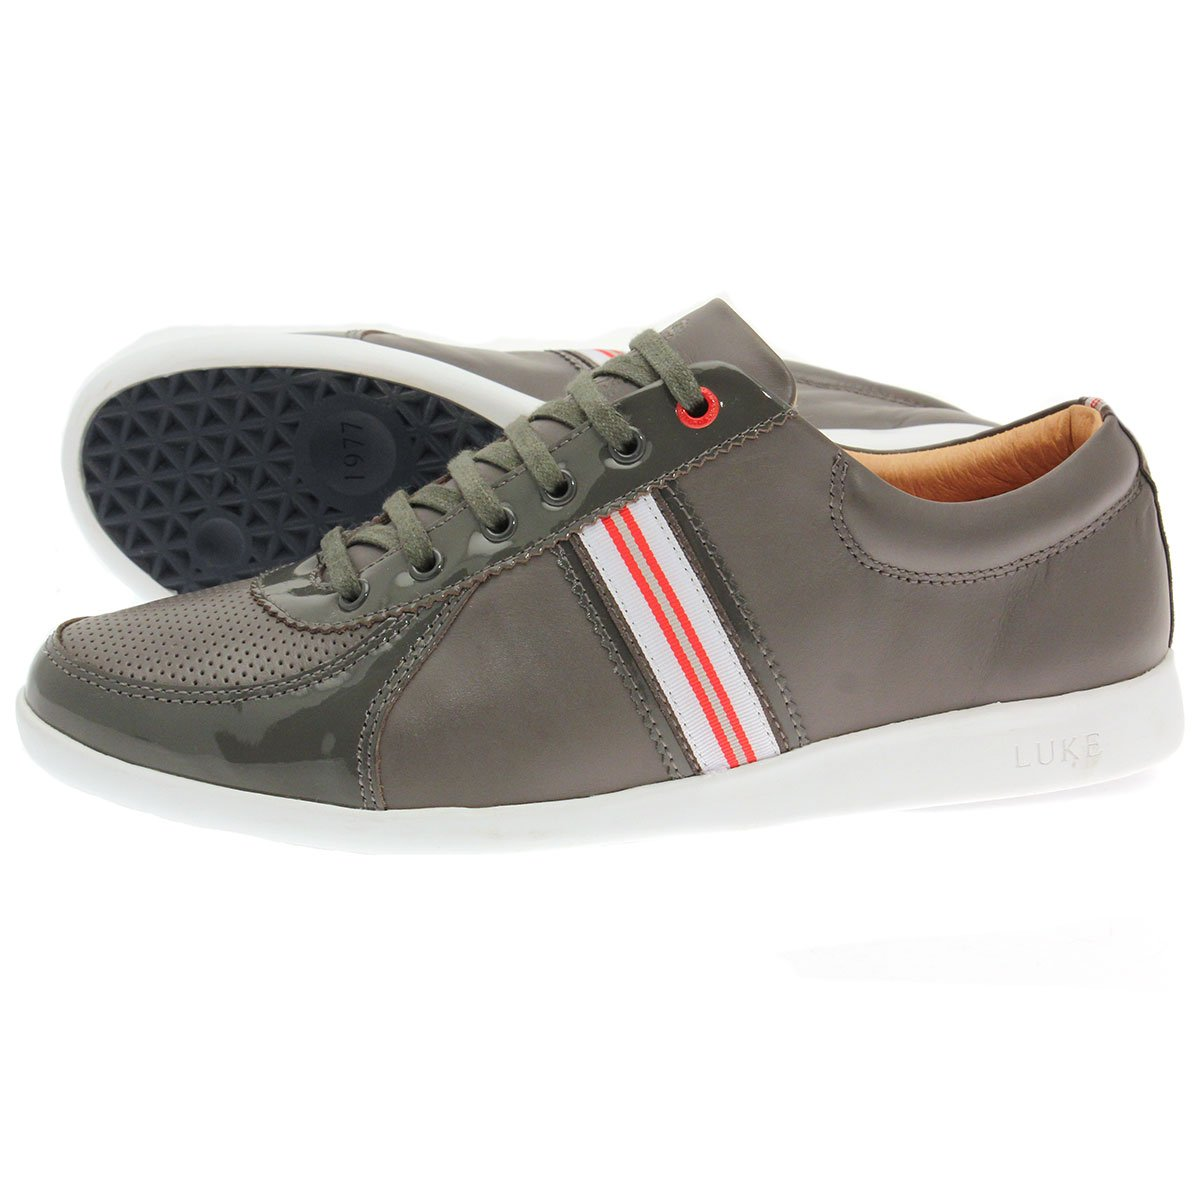 Vitric Trainers b Luke > Mens trainers > Premium quality > Knit mesh > White rubber sole > Red colour panel at heel > Luke branding > Upper: textile, synthetic.